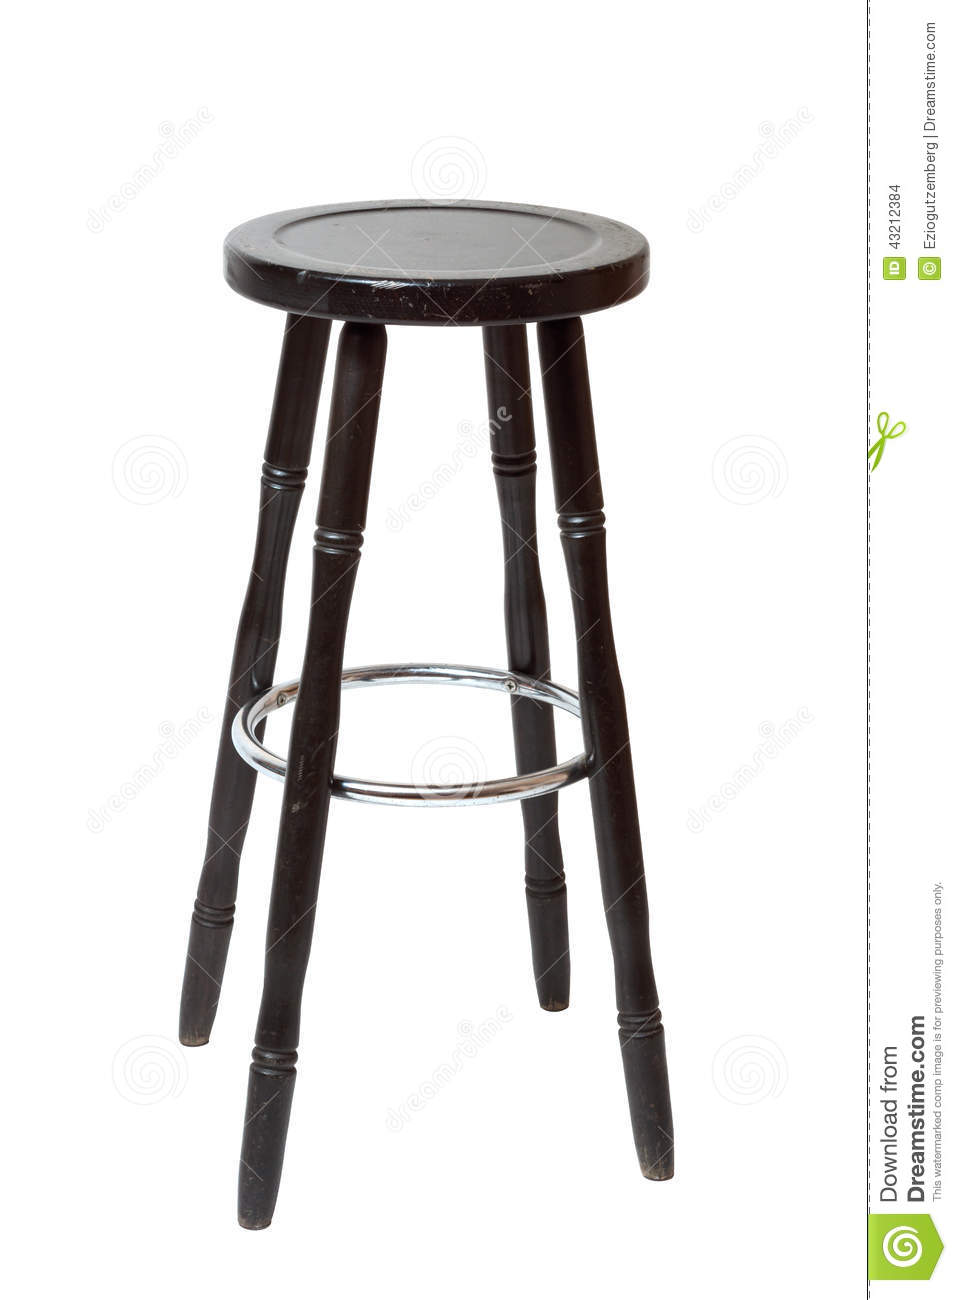 Classic Wooden Bar Stools Stock Photo Image 43212384 : classic wooden bar stools barstools white background 43212384 from dreamstime.com size 957 x 1300 jpeg 67kB